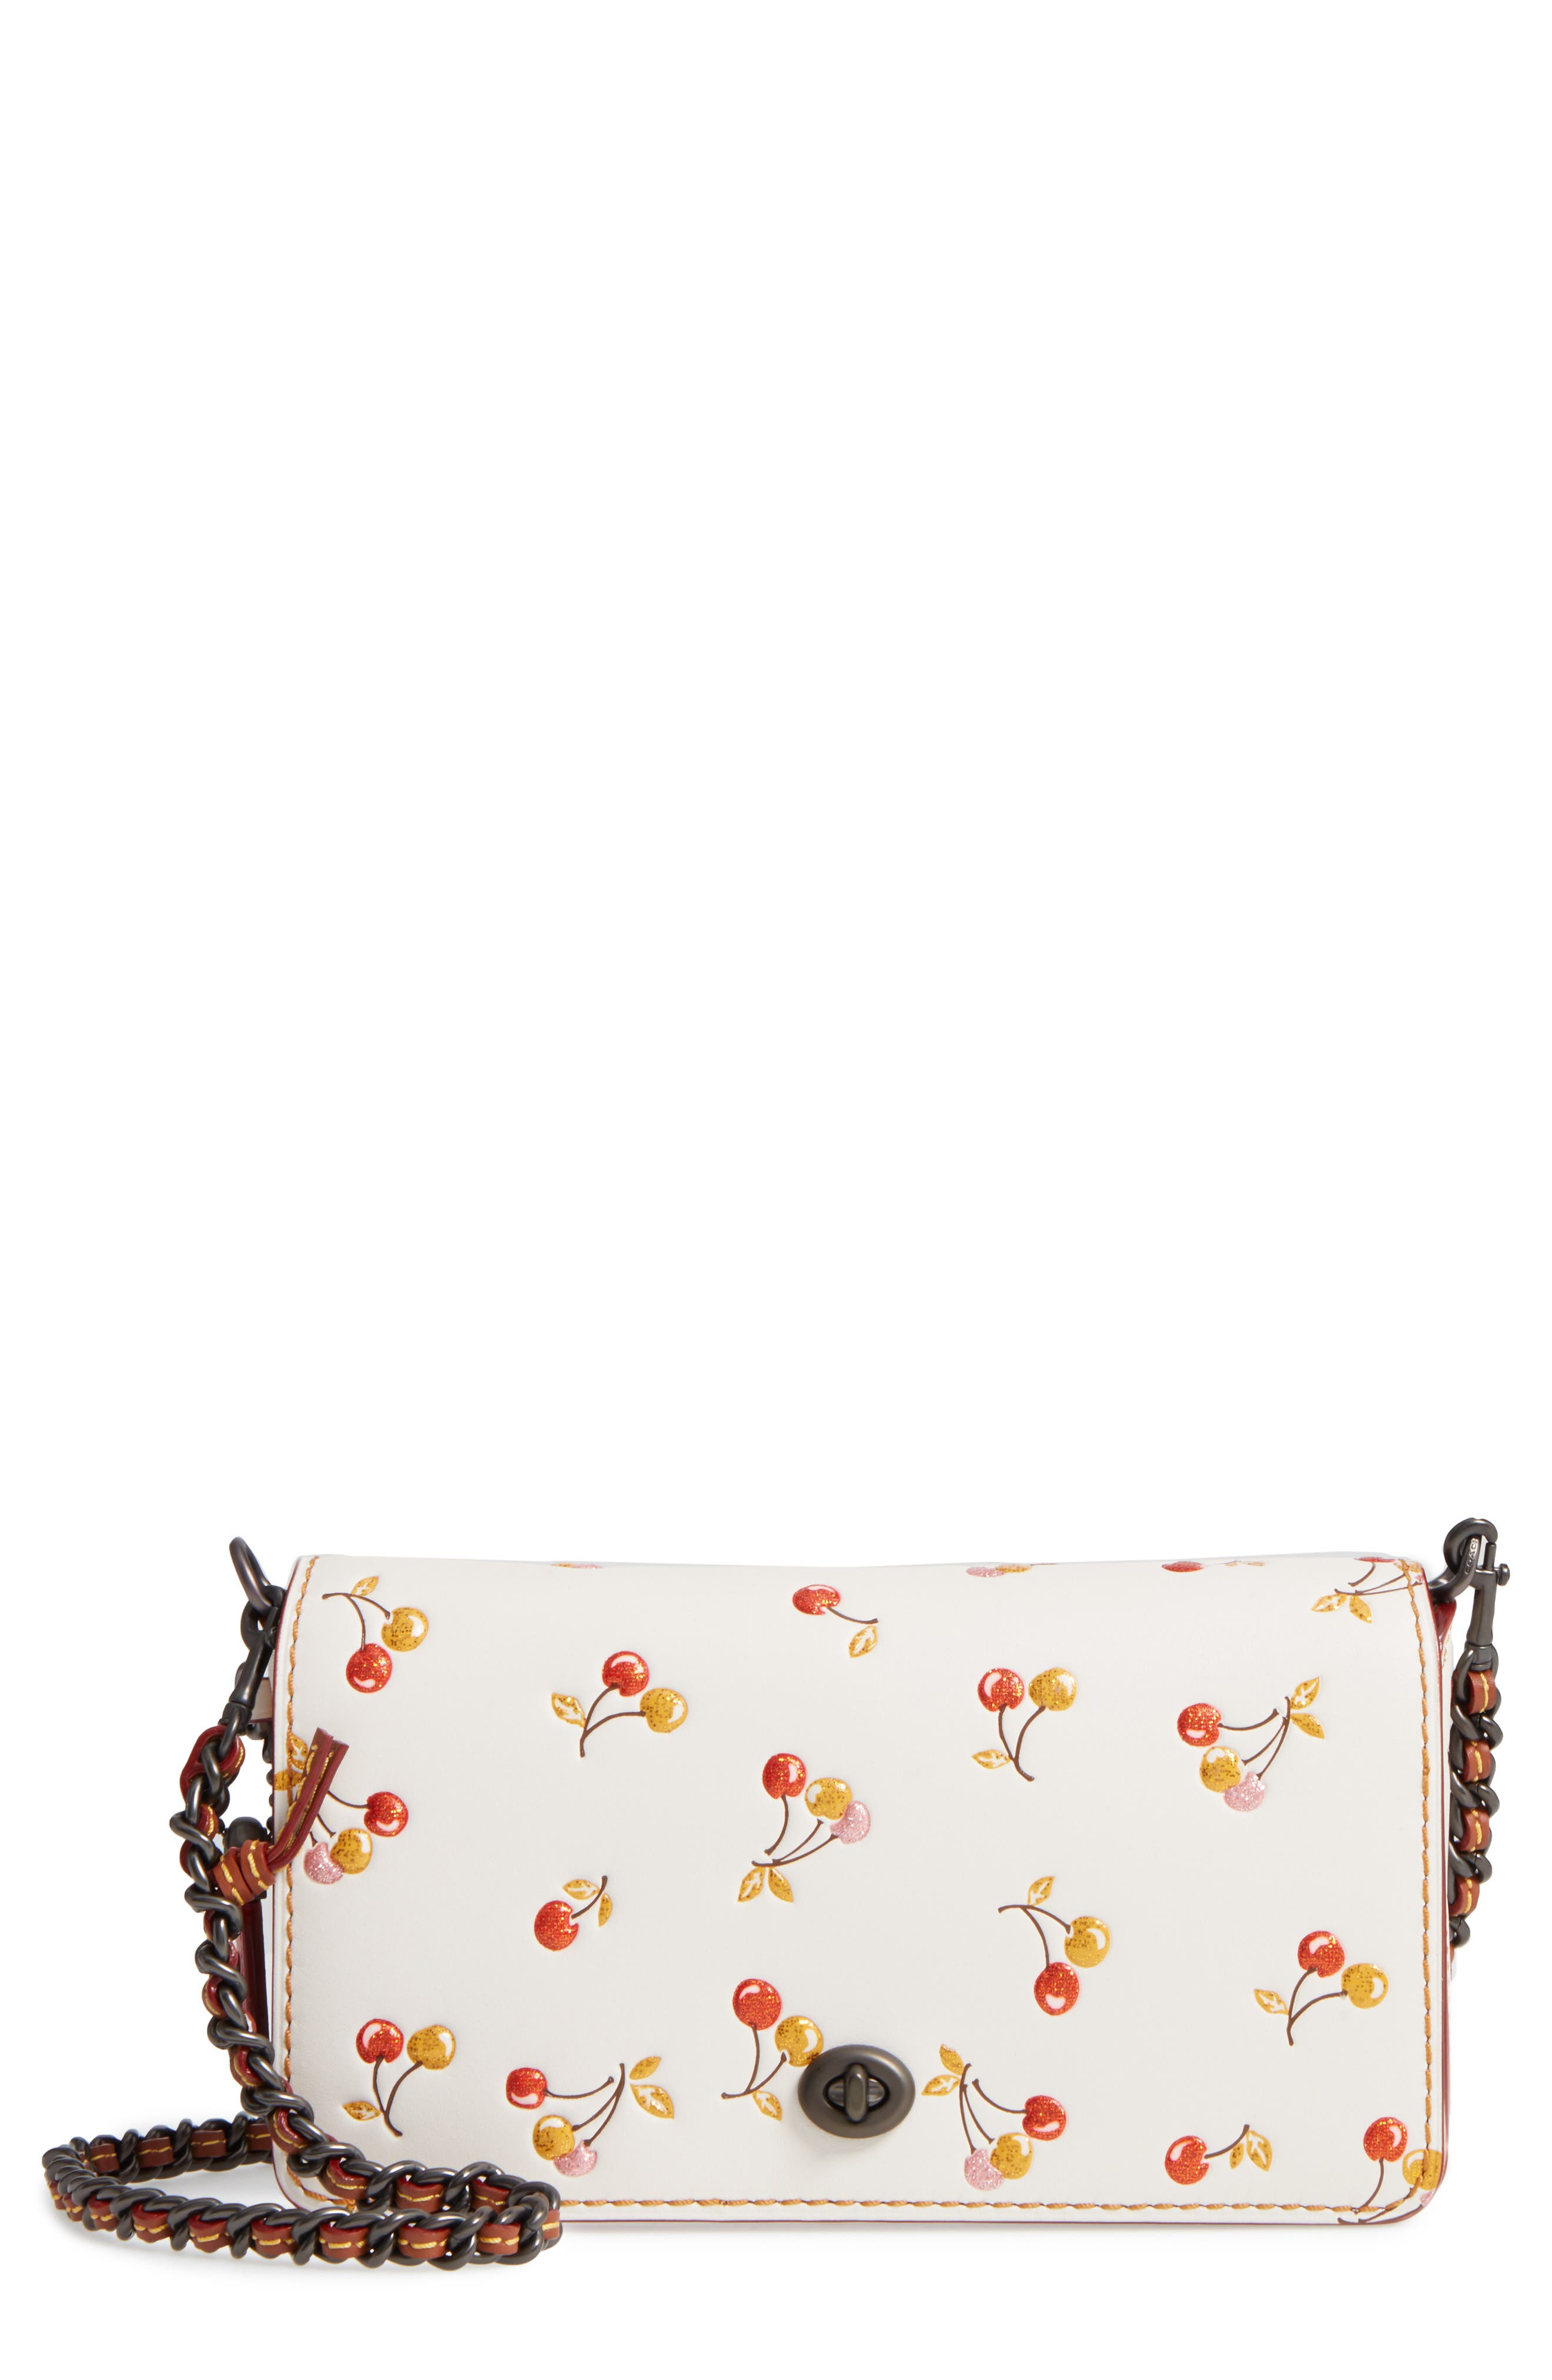 Alternate Image 1 Selected - COACH 1941 Cherries Dinky Leather Crossbody Bag